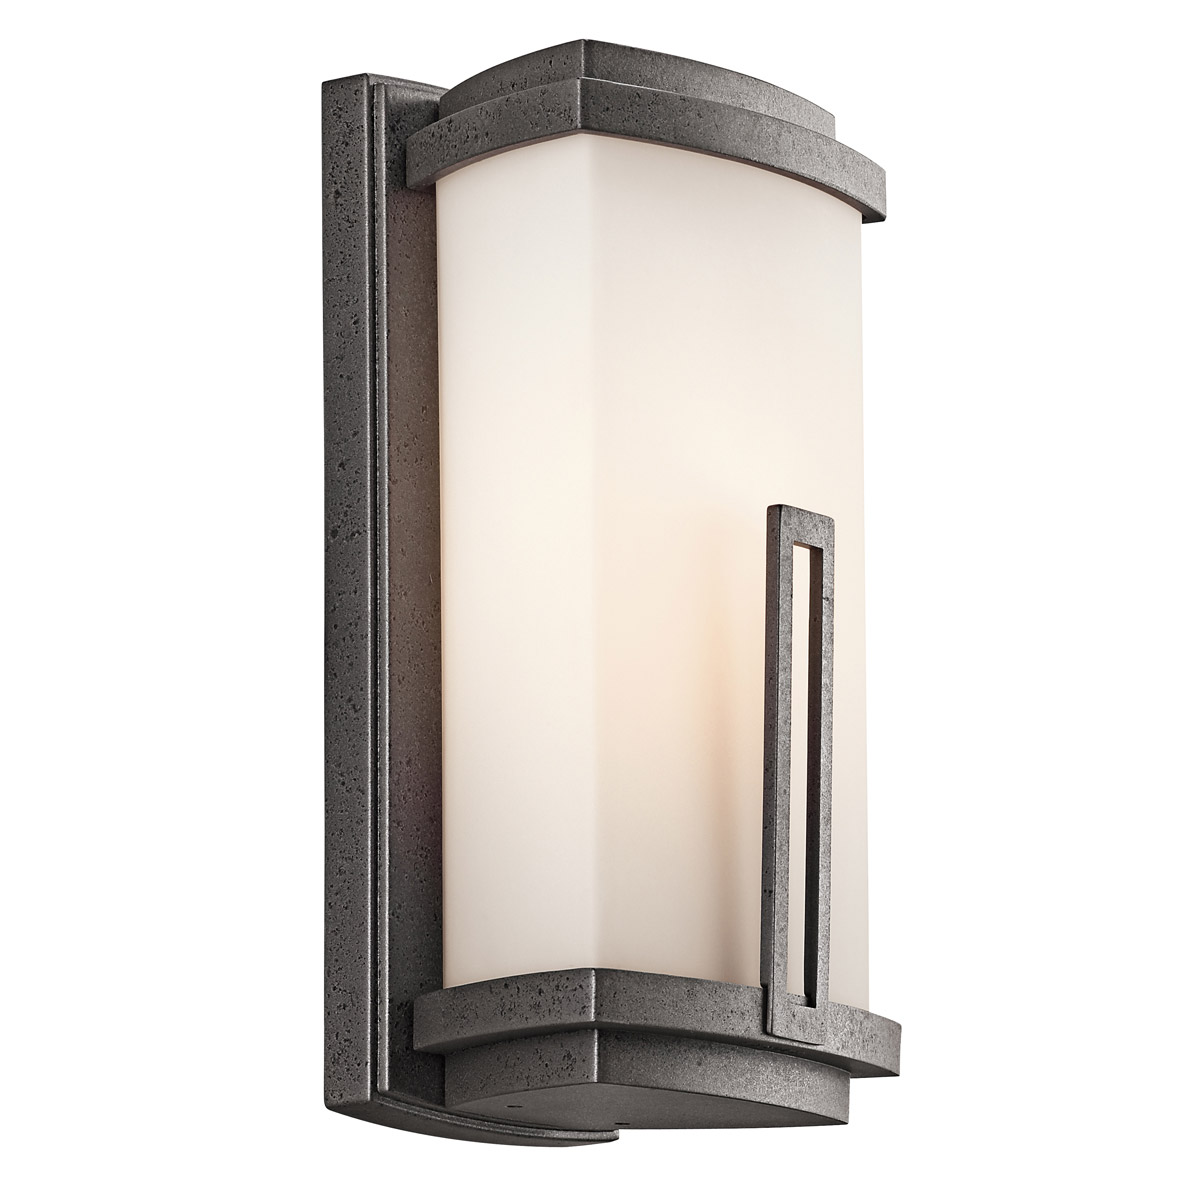 Wall Sconces Kichler : Kichler 49110AVI Leeds Outdoor Wall Sconce